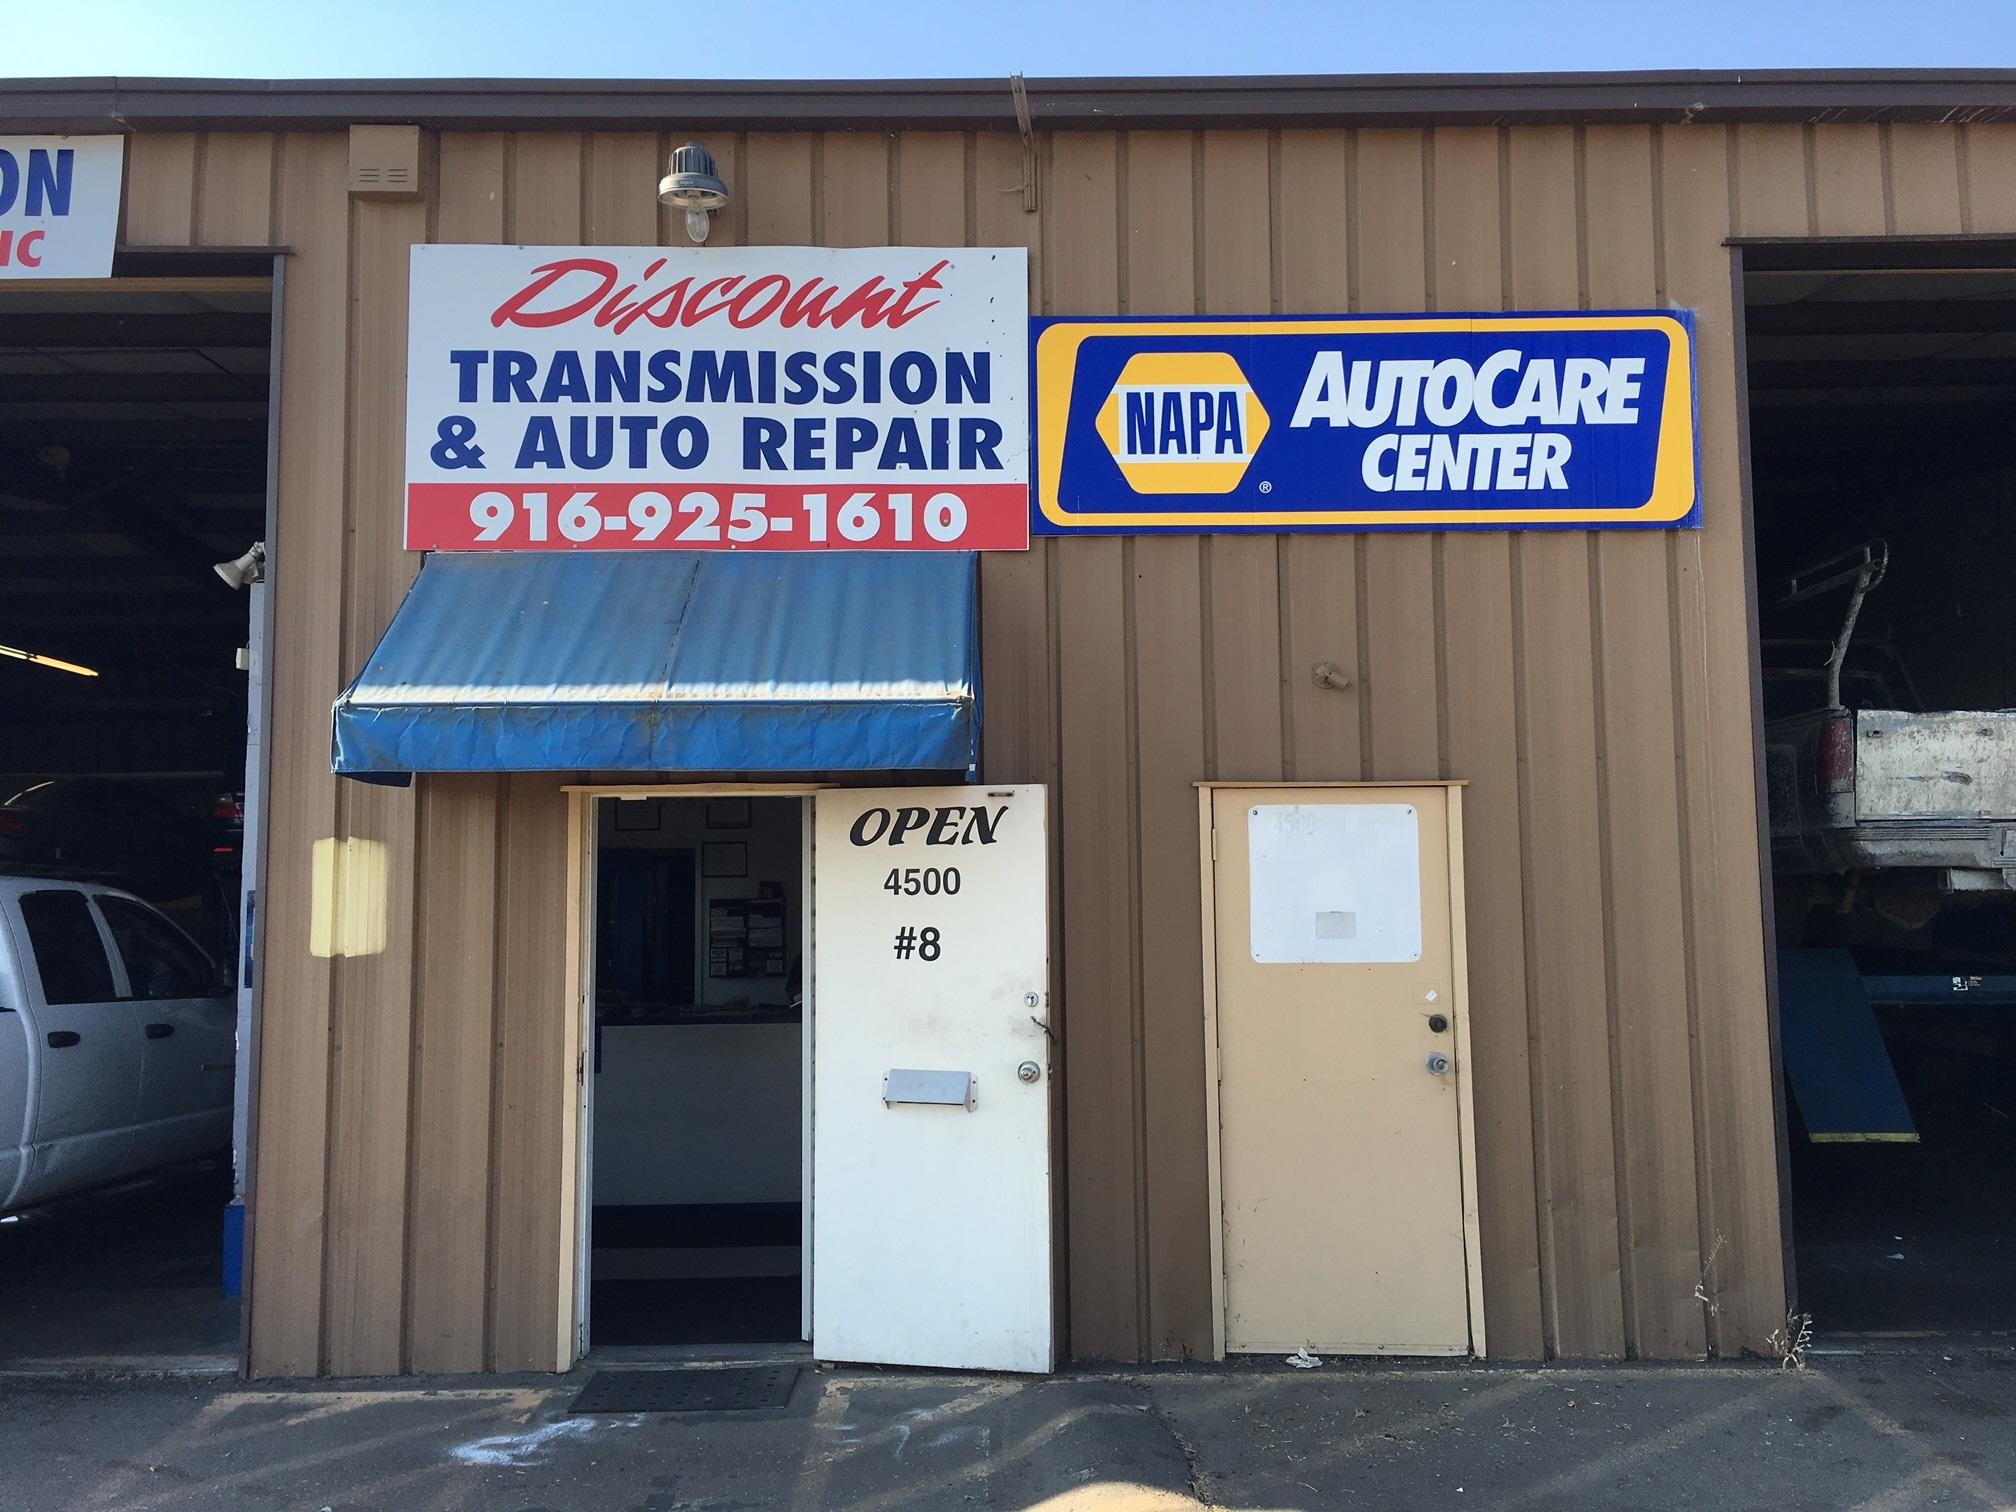 Discount transmission and auto repair in sacramento ca for Sacramento luxury motors reviews